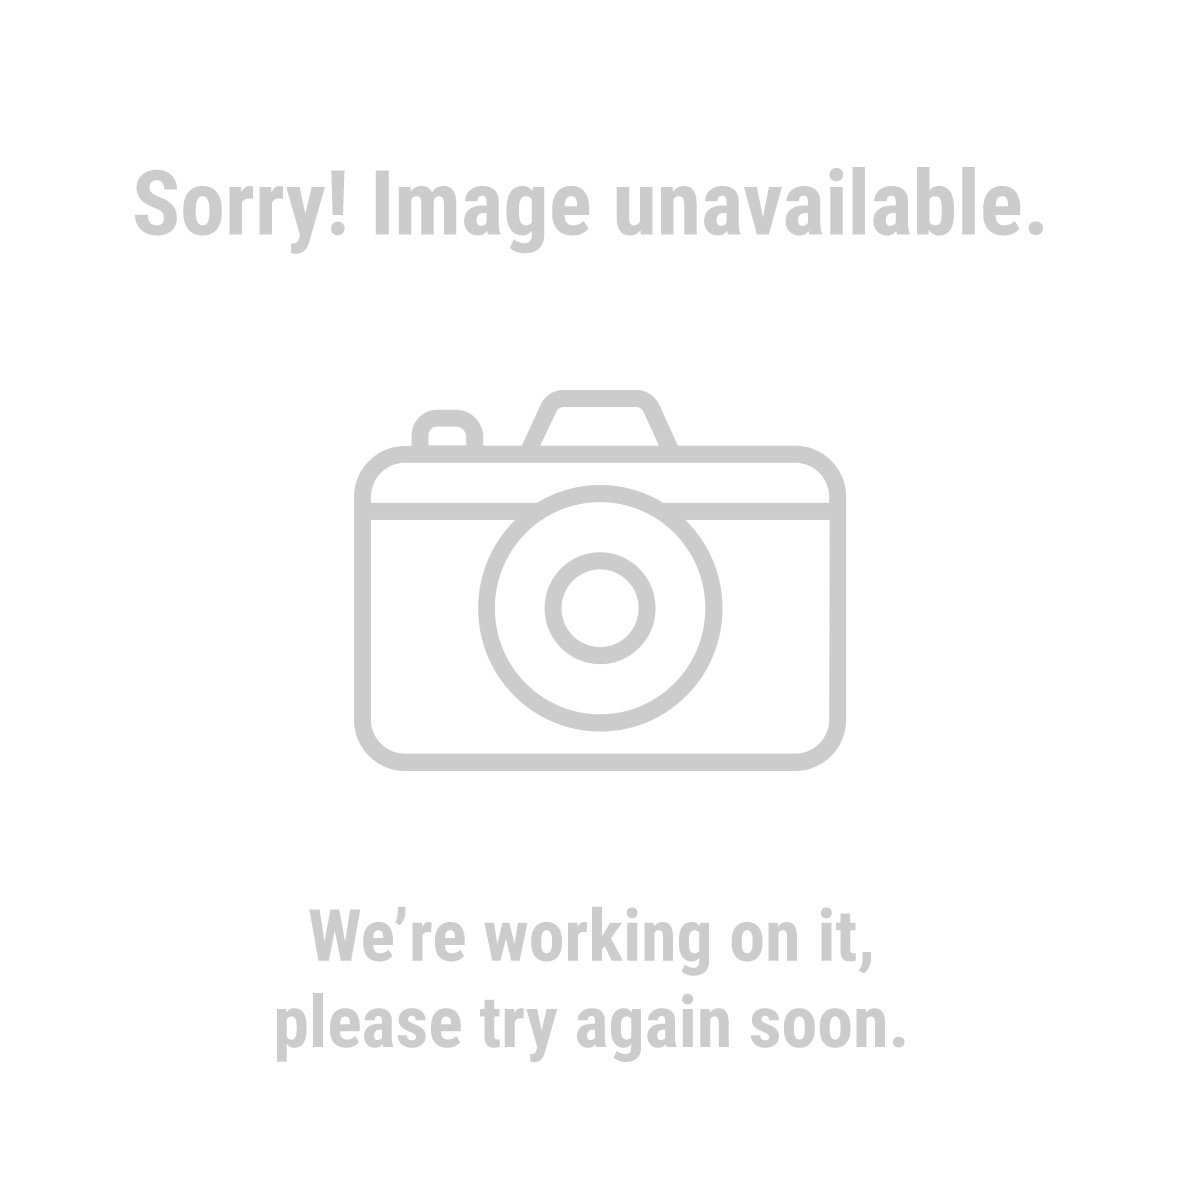 93671 6 Ft. x 4 Ft. Heavy Duty Trailer Net